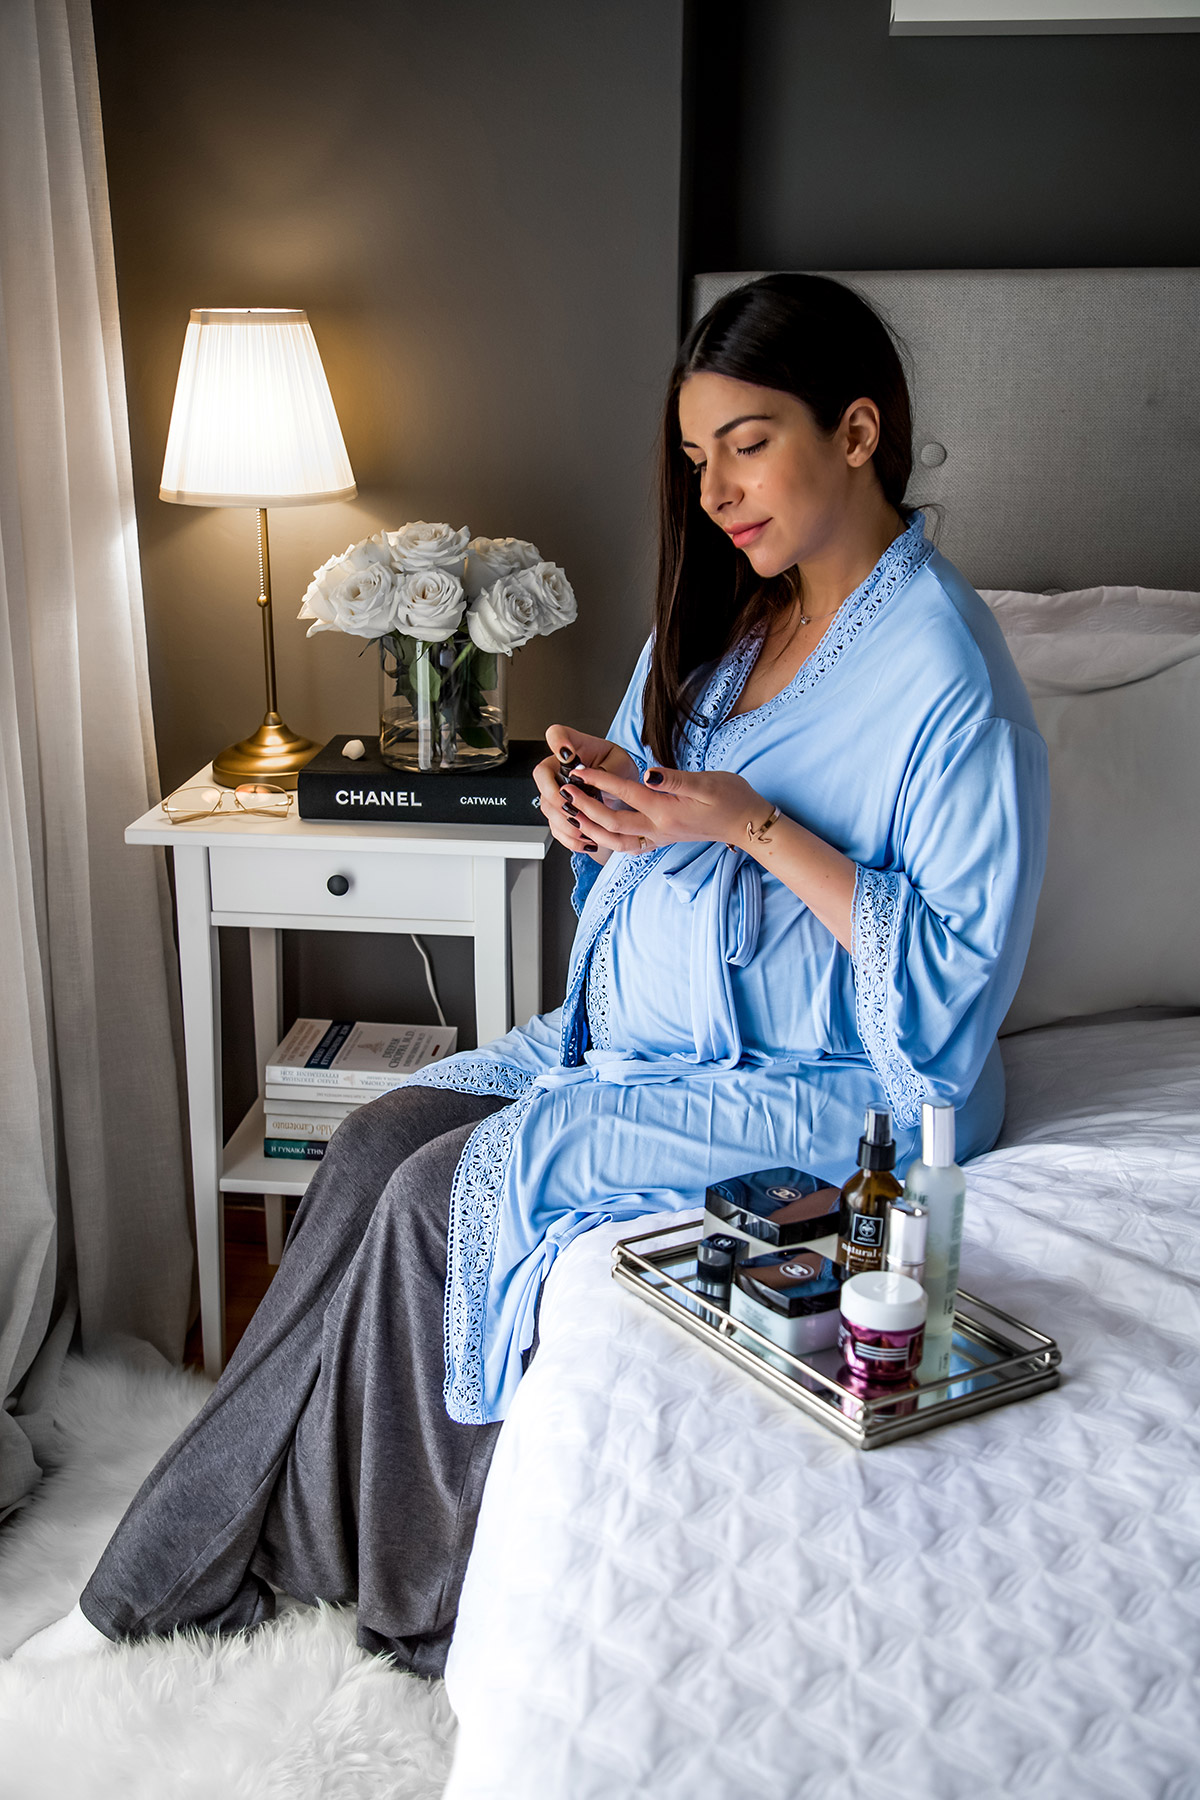 How I spend the last days of pregnancy - Stella Asteria | Fashion & Lifestyle Blog - maternity style with maternity/nursing robe by PinkBlush